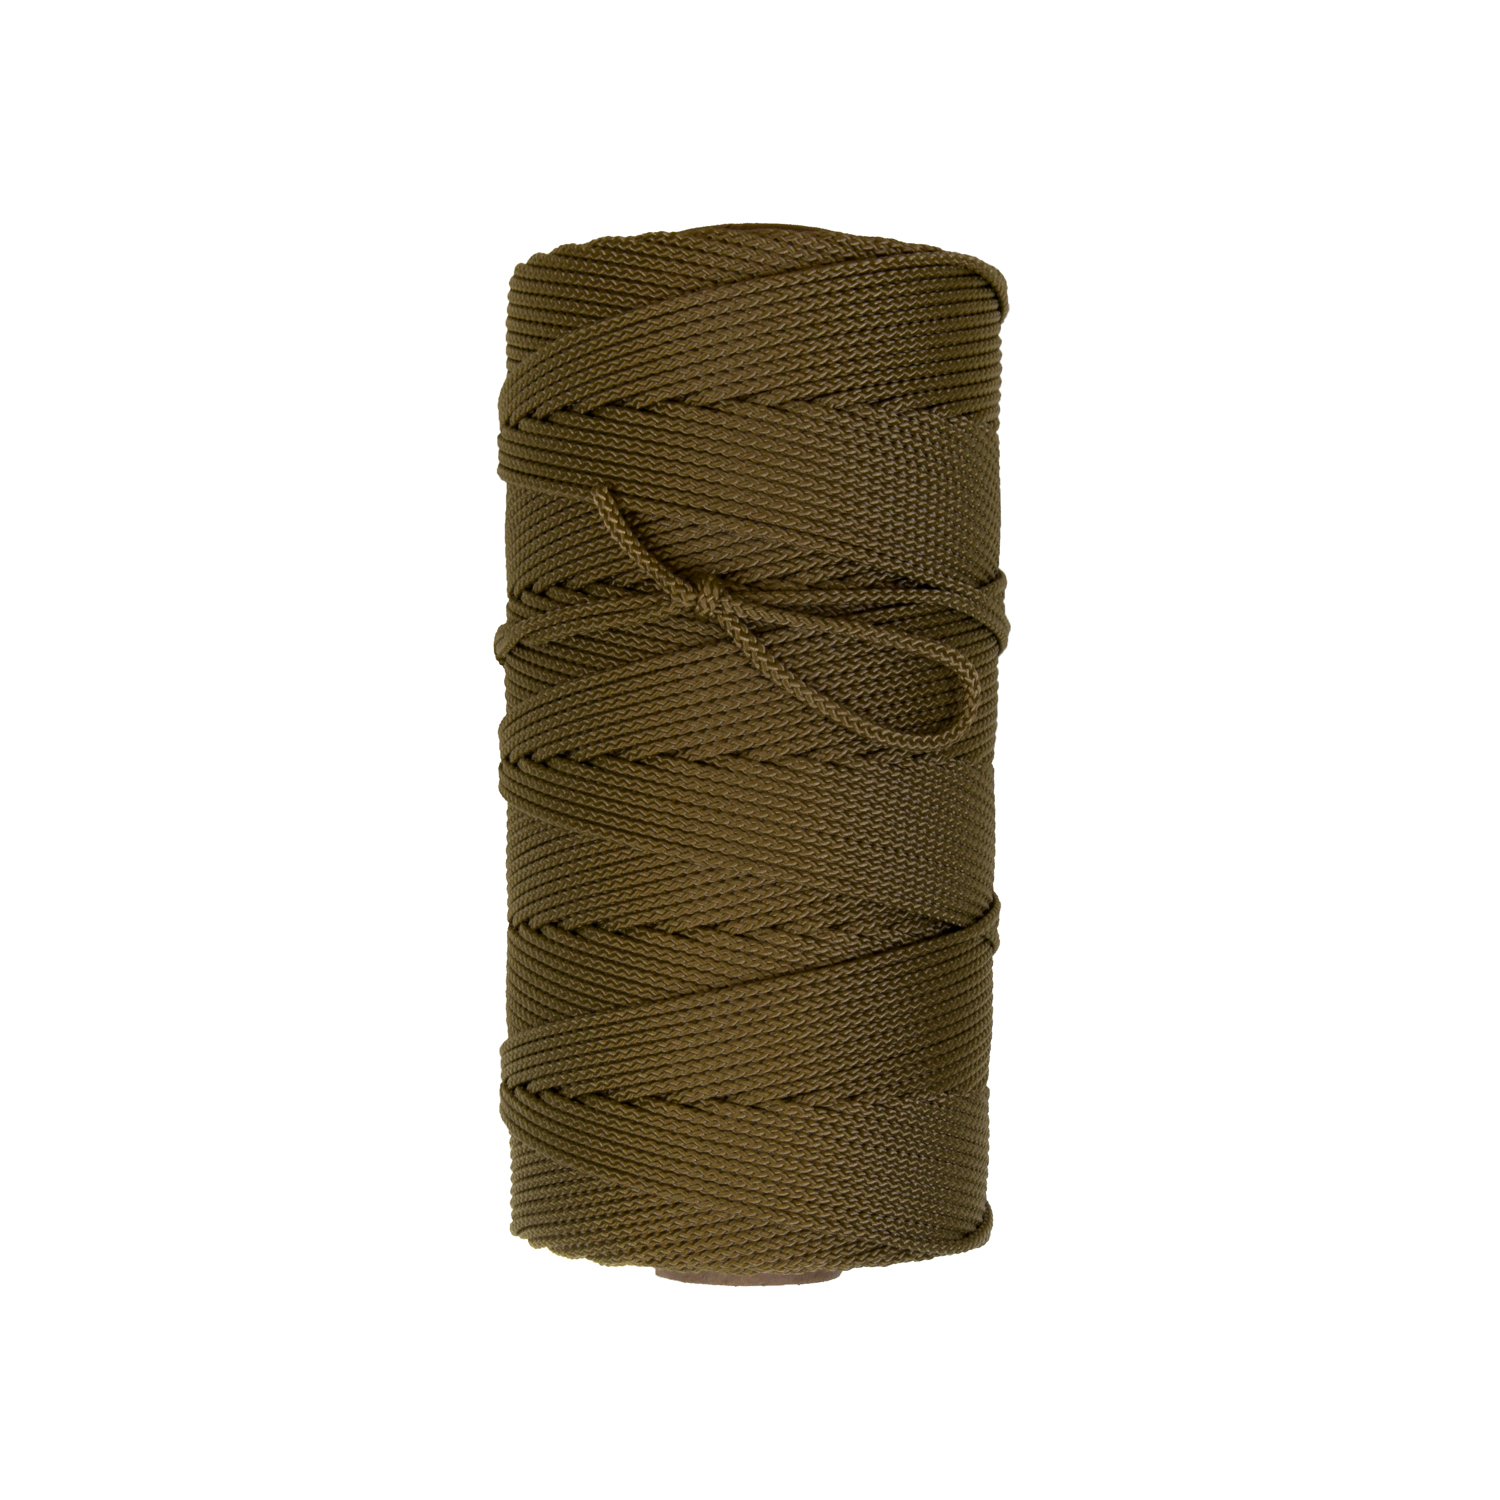 Regular Braid - Firestone Gold - Braided Firestone Gold twines have always been a favorite with commercial fisherman for net hanging, mending, and repair. Packaged in 1 lb tubes but bulk carton put-ups are also available.